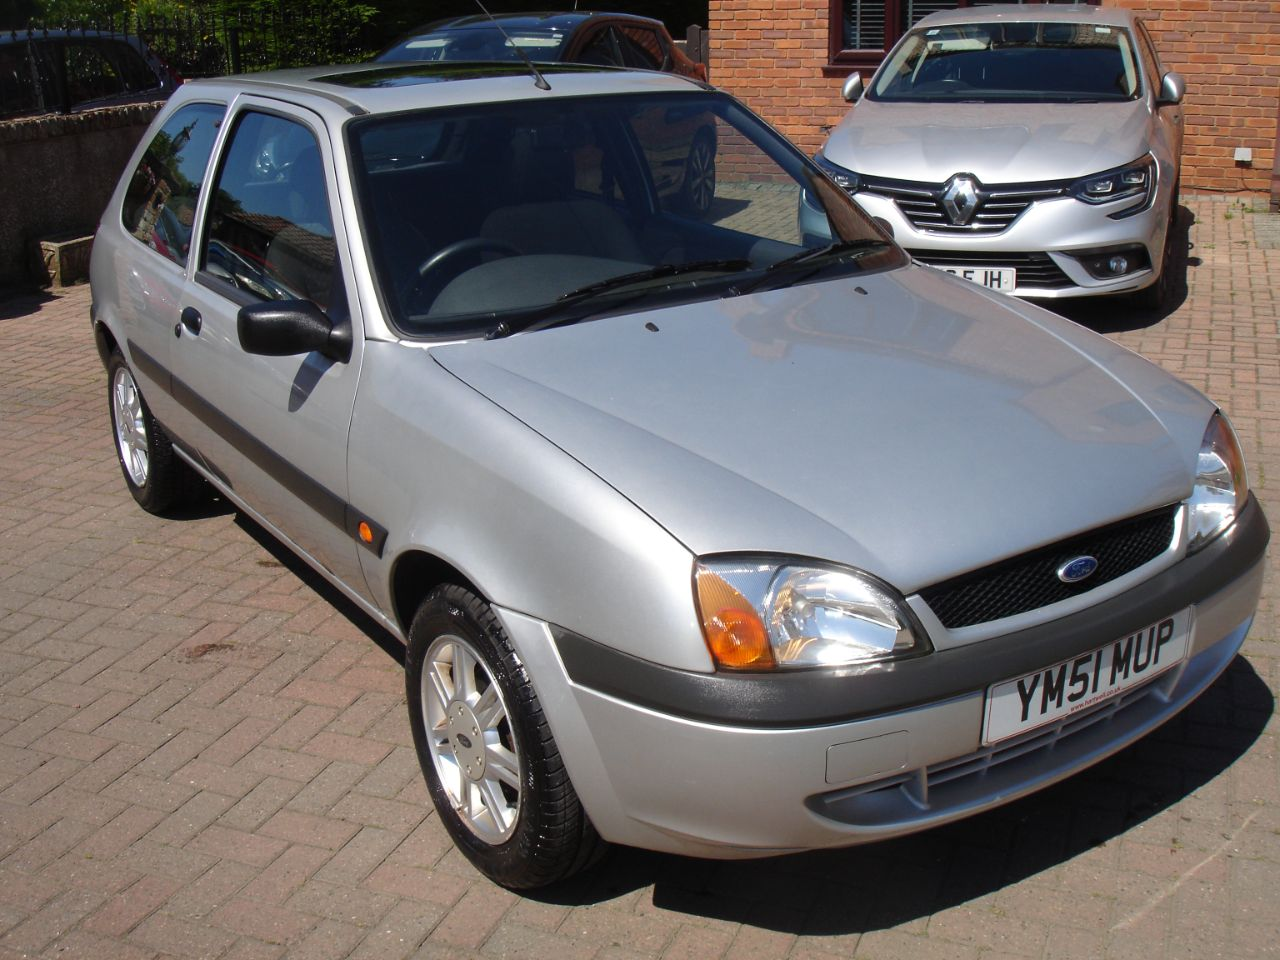 Ford Fiesta 1.3 Flight 3dr Hatchback Petrol Silver at Level Pitch Selby